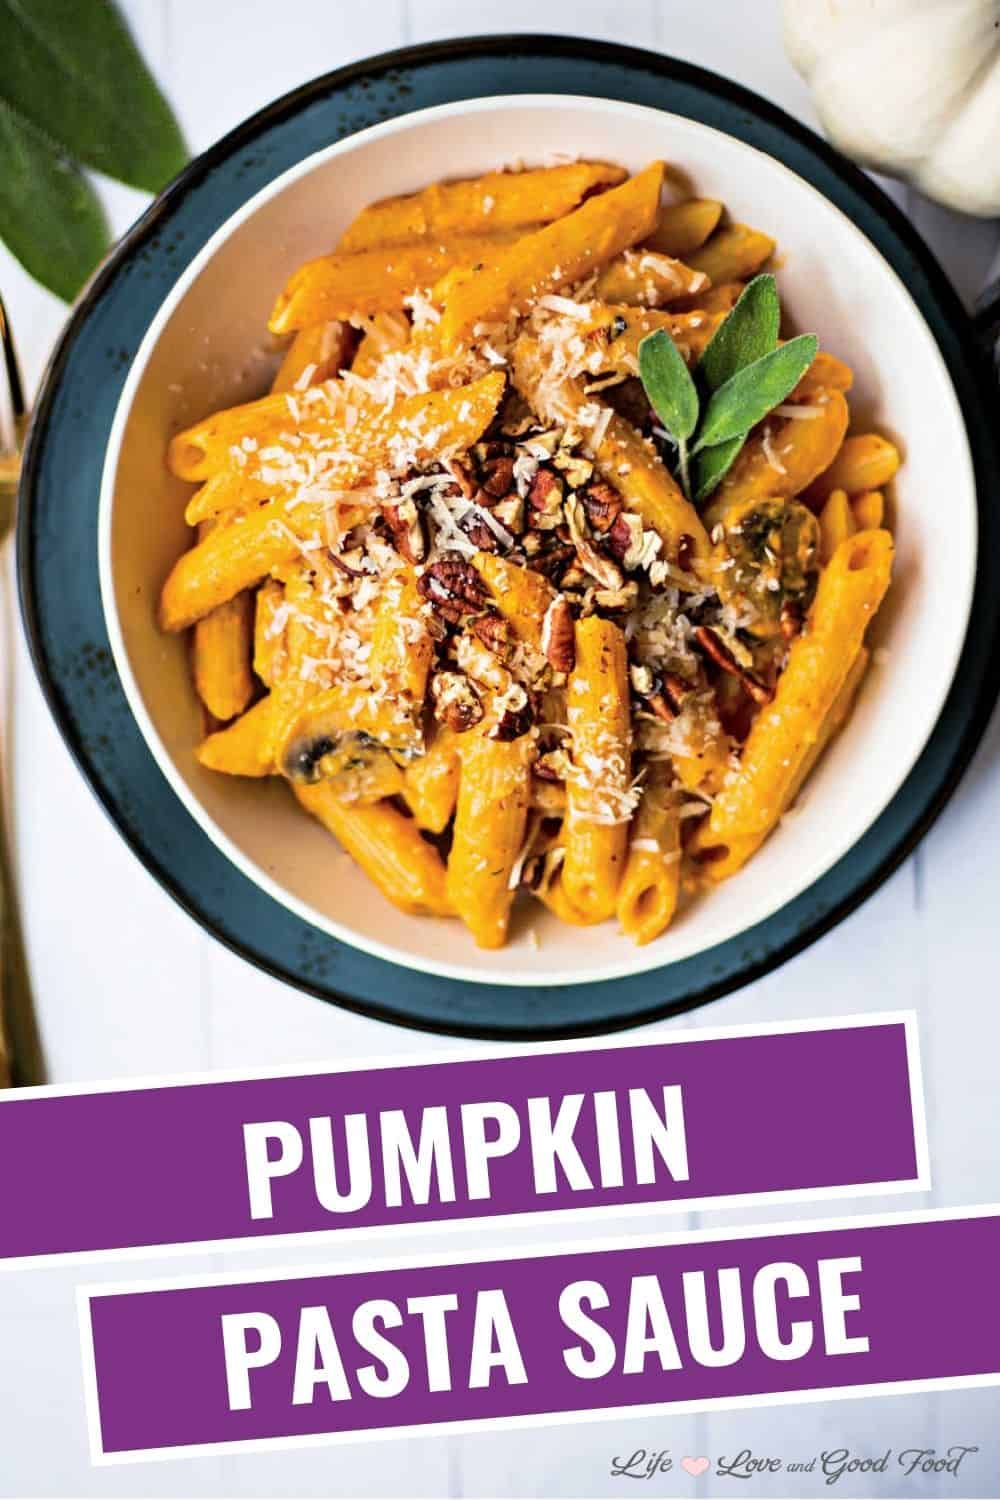 Simple, but elegant Pumpkin Pasta Sauce with Mushrooms and Sage is served tossed with Garofalo®  penne ziti rigate. #ad Garnished with even more fresh sage, Parmesan cheese, and toasted pecans, this savory pasta dish has a rich, creamy texture that's bursting with sophisticated flavor. This healthy meatless pasta recipe gets its creaminess from canned pumpkin purée and a bit of cream cheese—not a lot of heavy cream. Add mushrooms, garlic, and fresh sage for a delicious pumpkin sauce that's perfect for the fall season! Find all of the ingredients for this recipe at your local Ingles.  #pasta #pumpkin #PastaGarofaloUSA